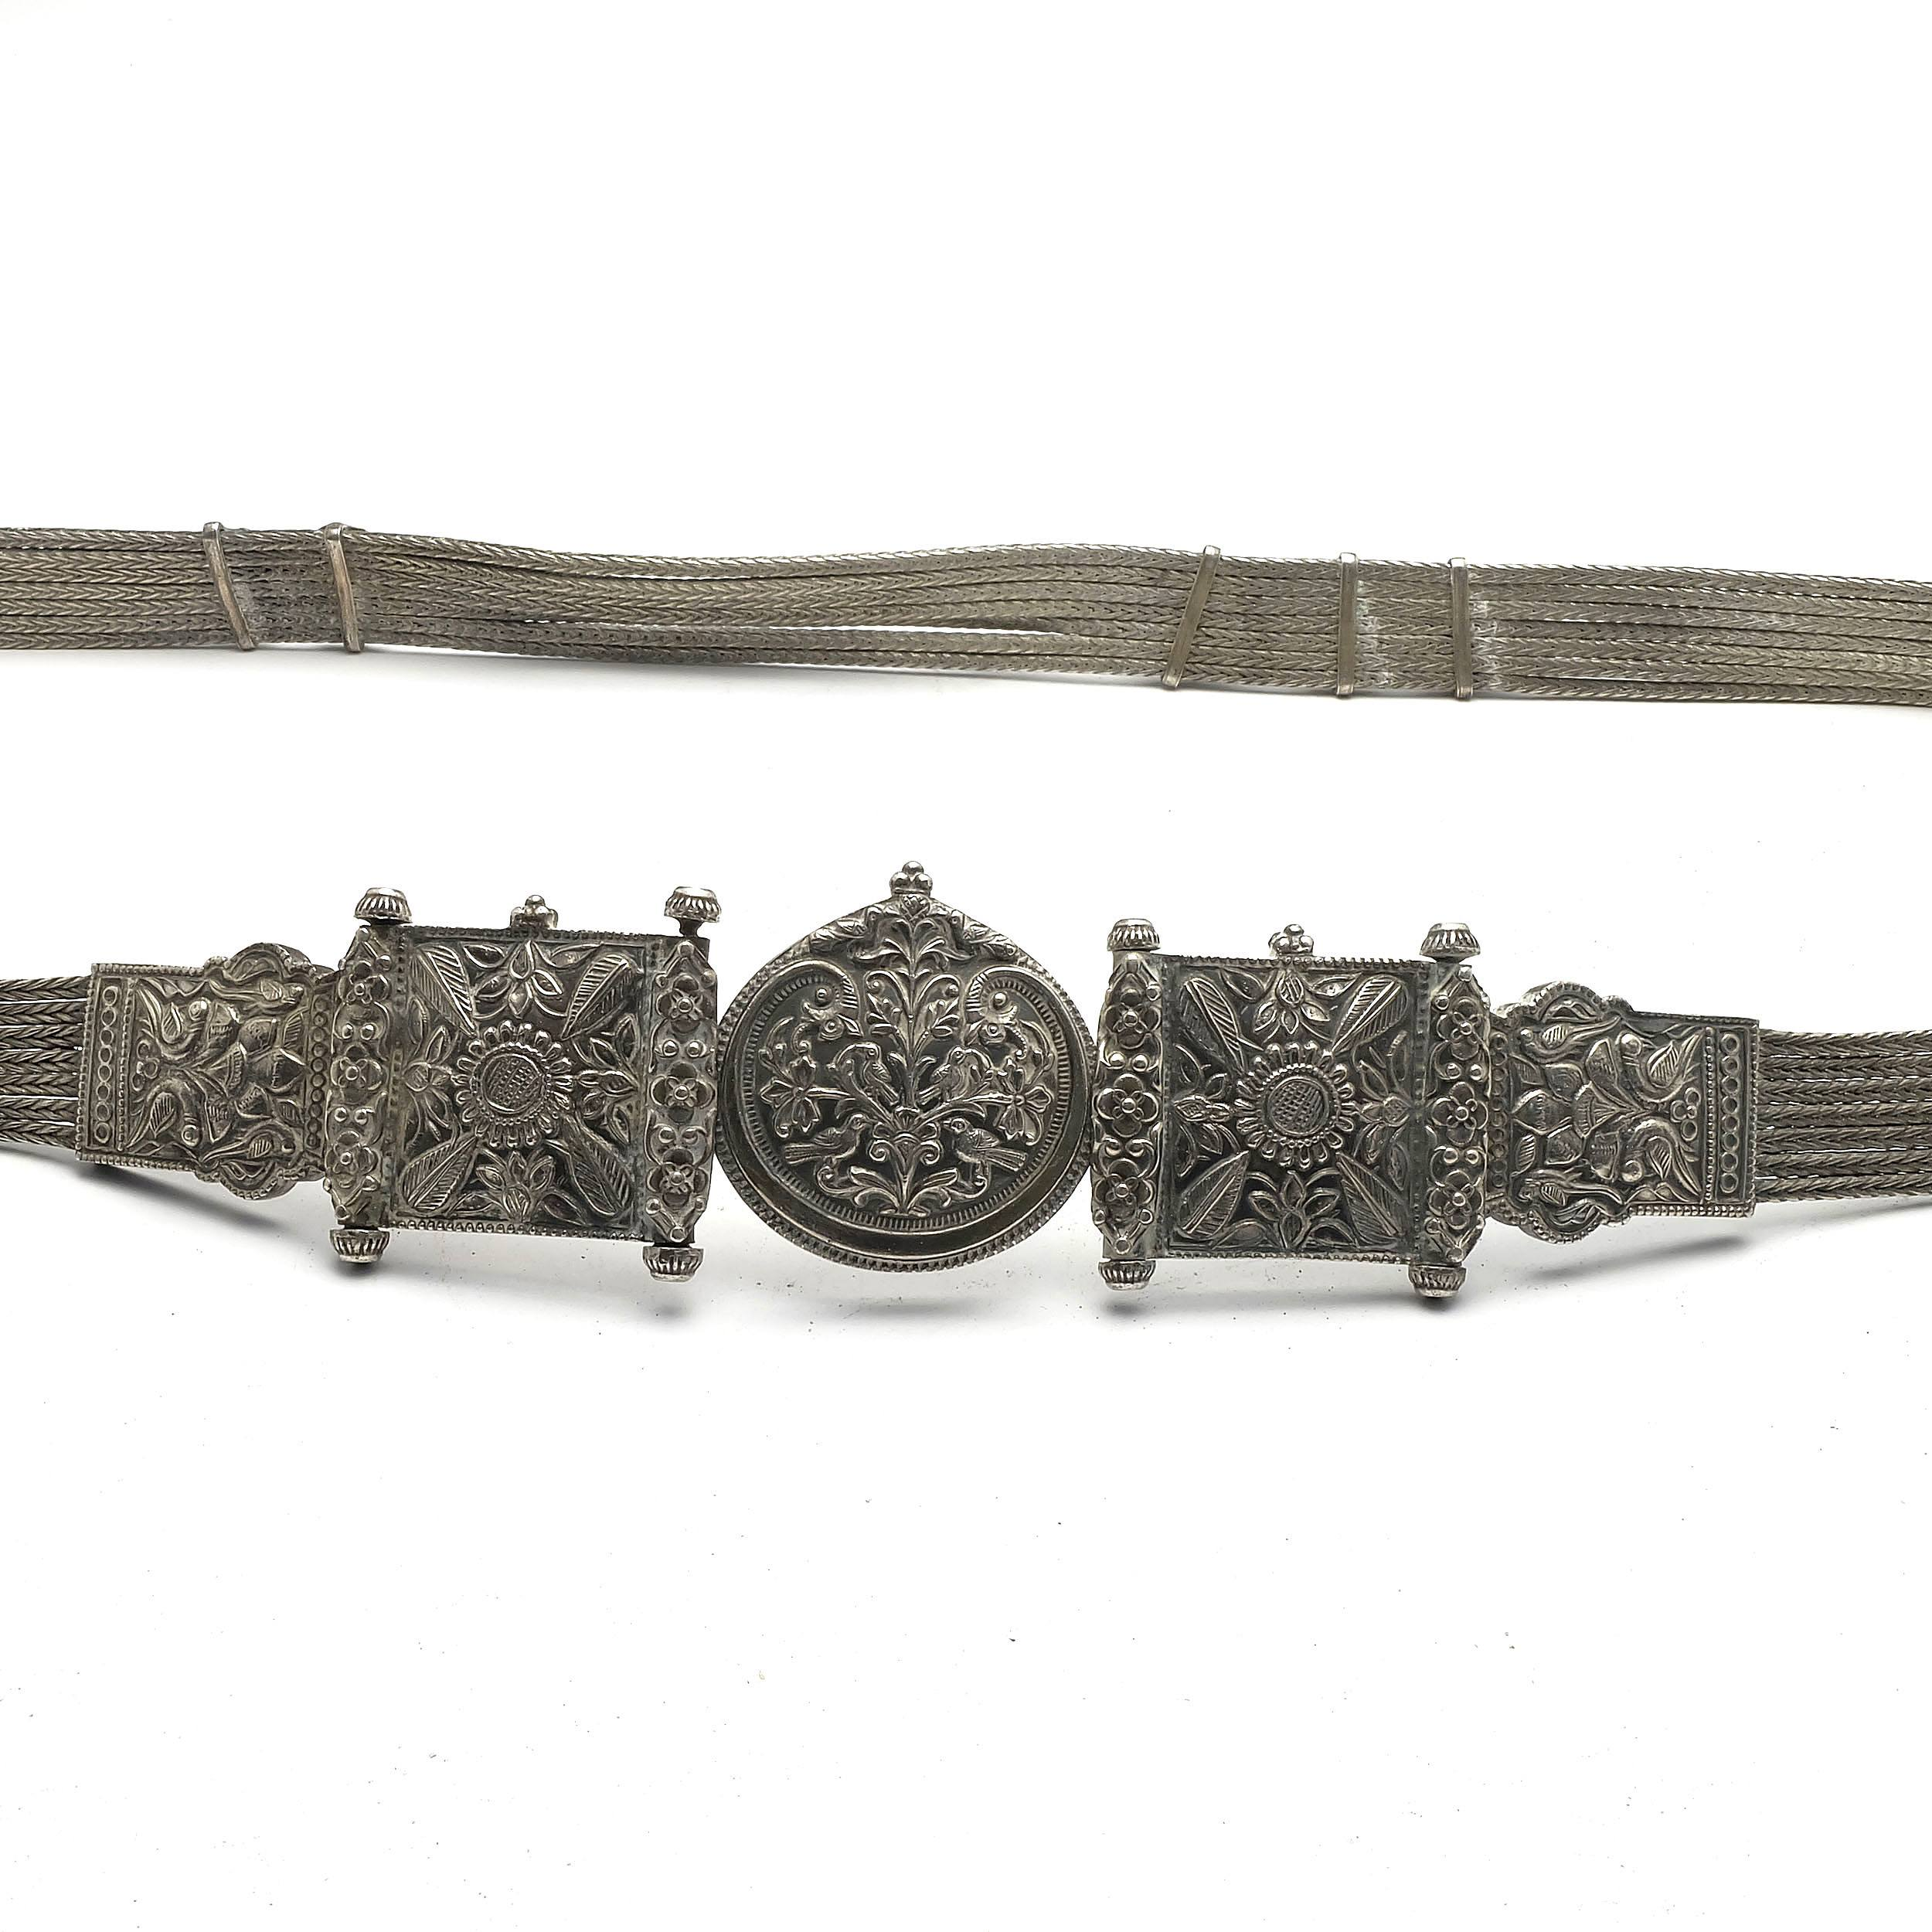 'Indian Silver Belt with Repousse Buckle and Seven Braided Silver Wires Forming the Belt, 385g'